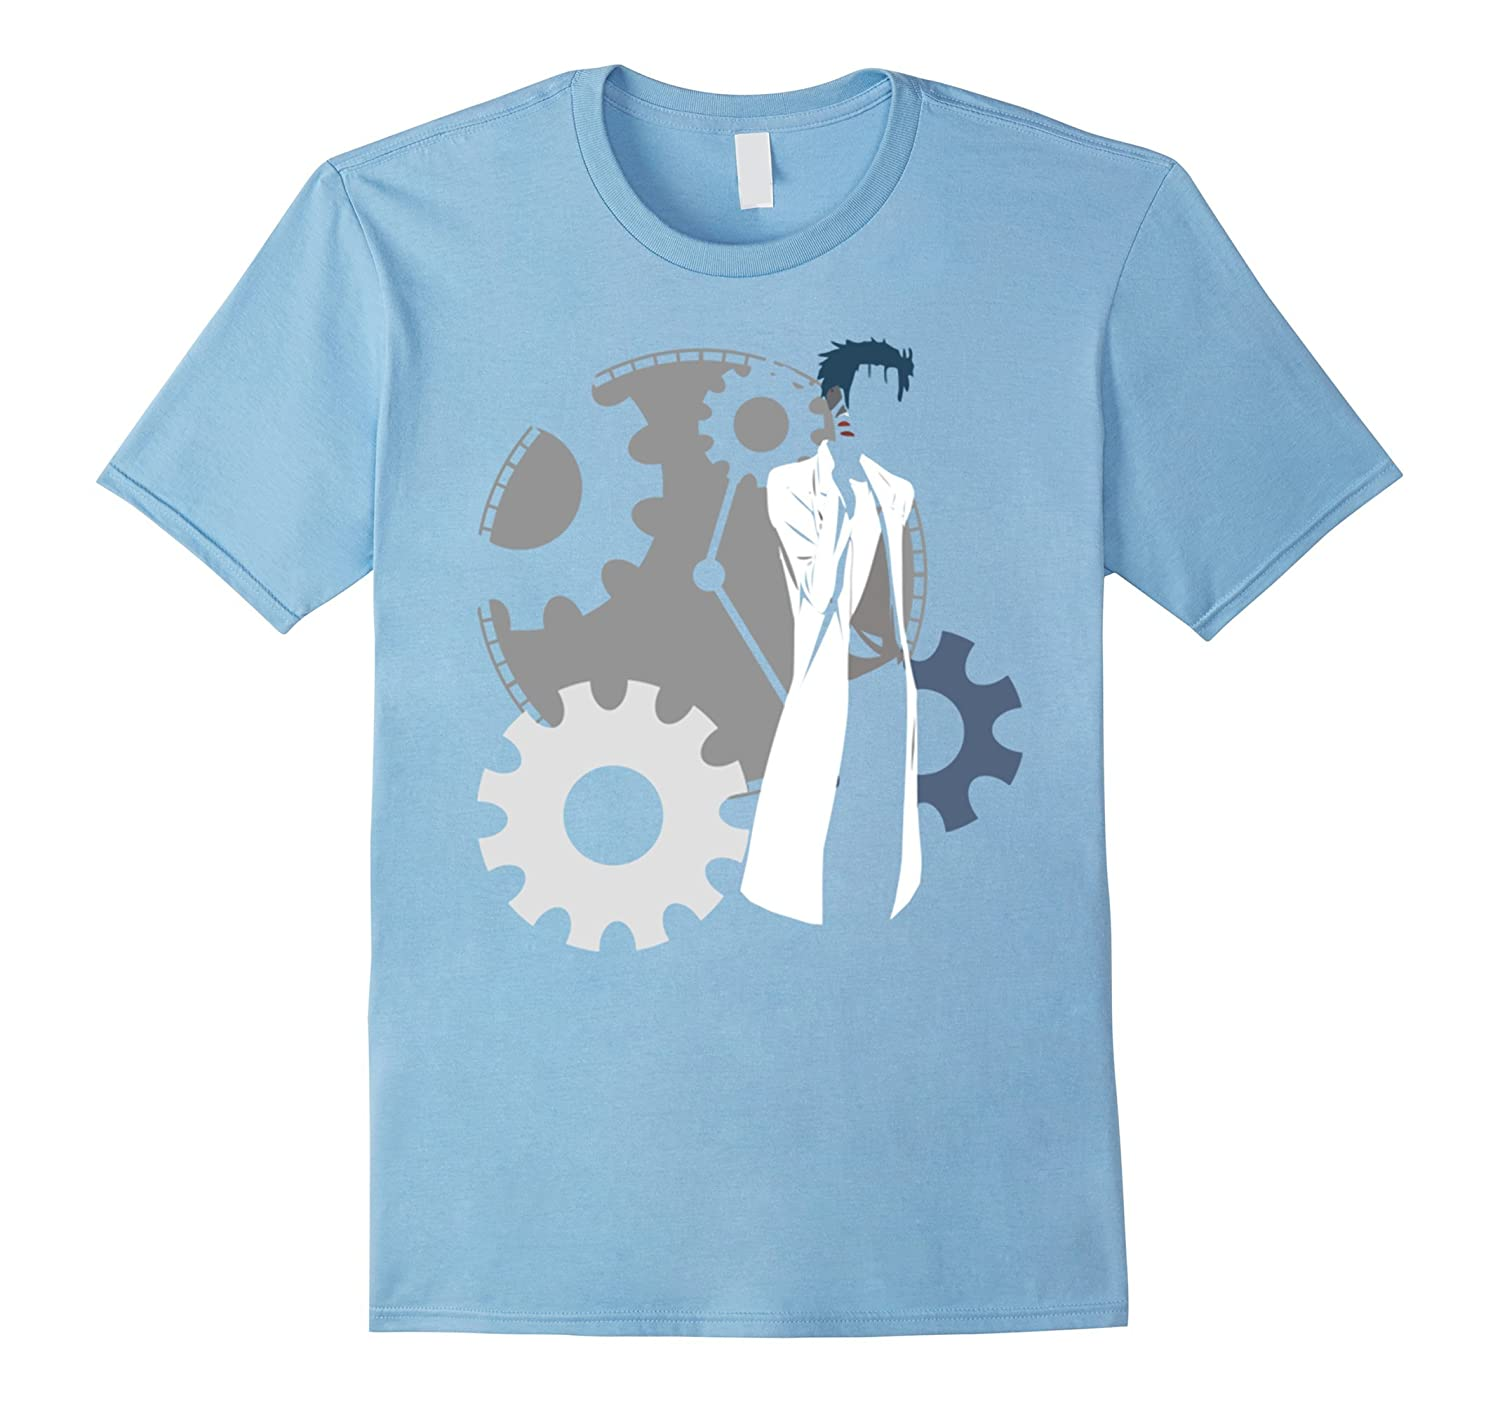 the time machine maker t shirt cl colamaga